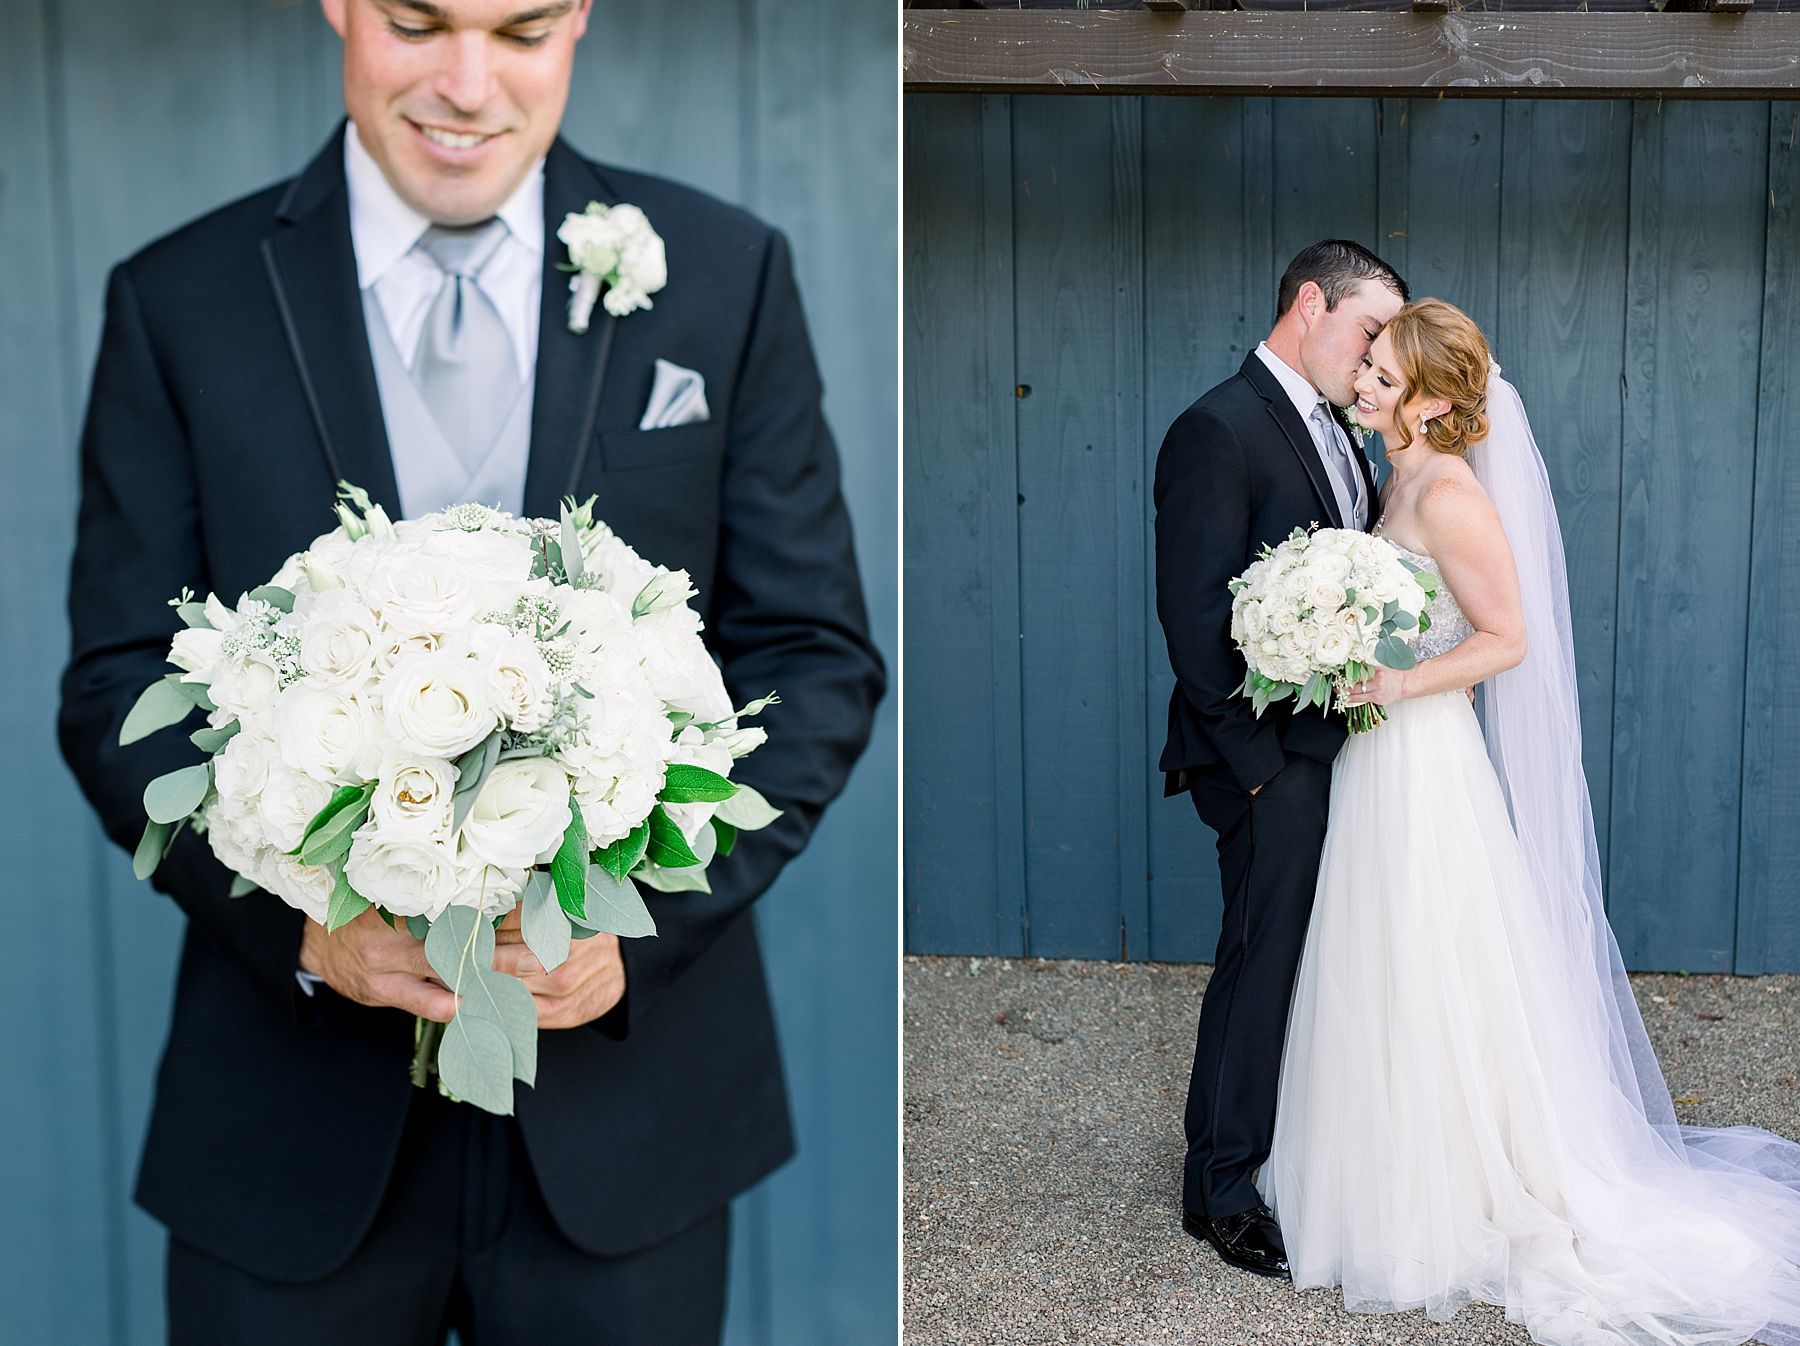 Wine and Roses Wedding - Wine and Roses Lodi Wedding Photographer - Sacramento Film Wedding Photographer - Ashley Baumgartner - Sacramento Luxury Wedding Photographer_0024.jpg